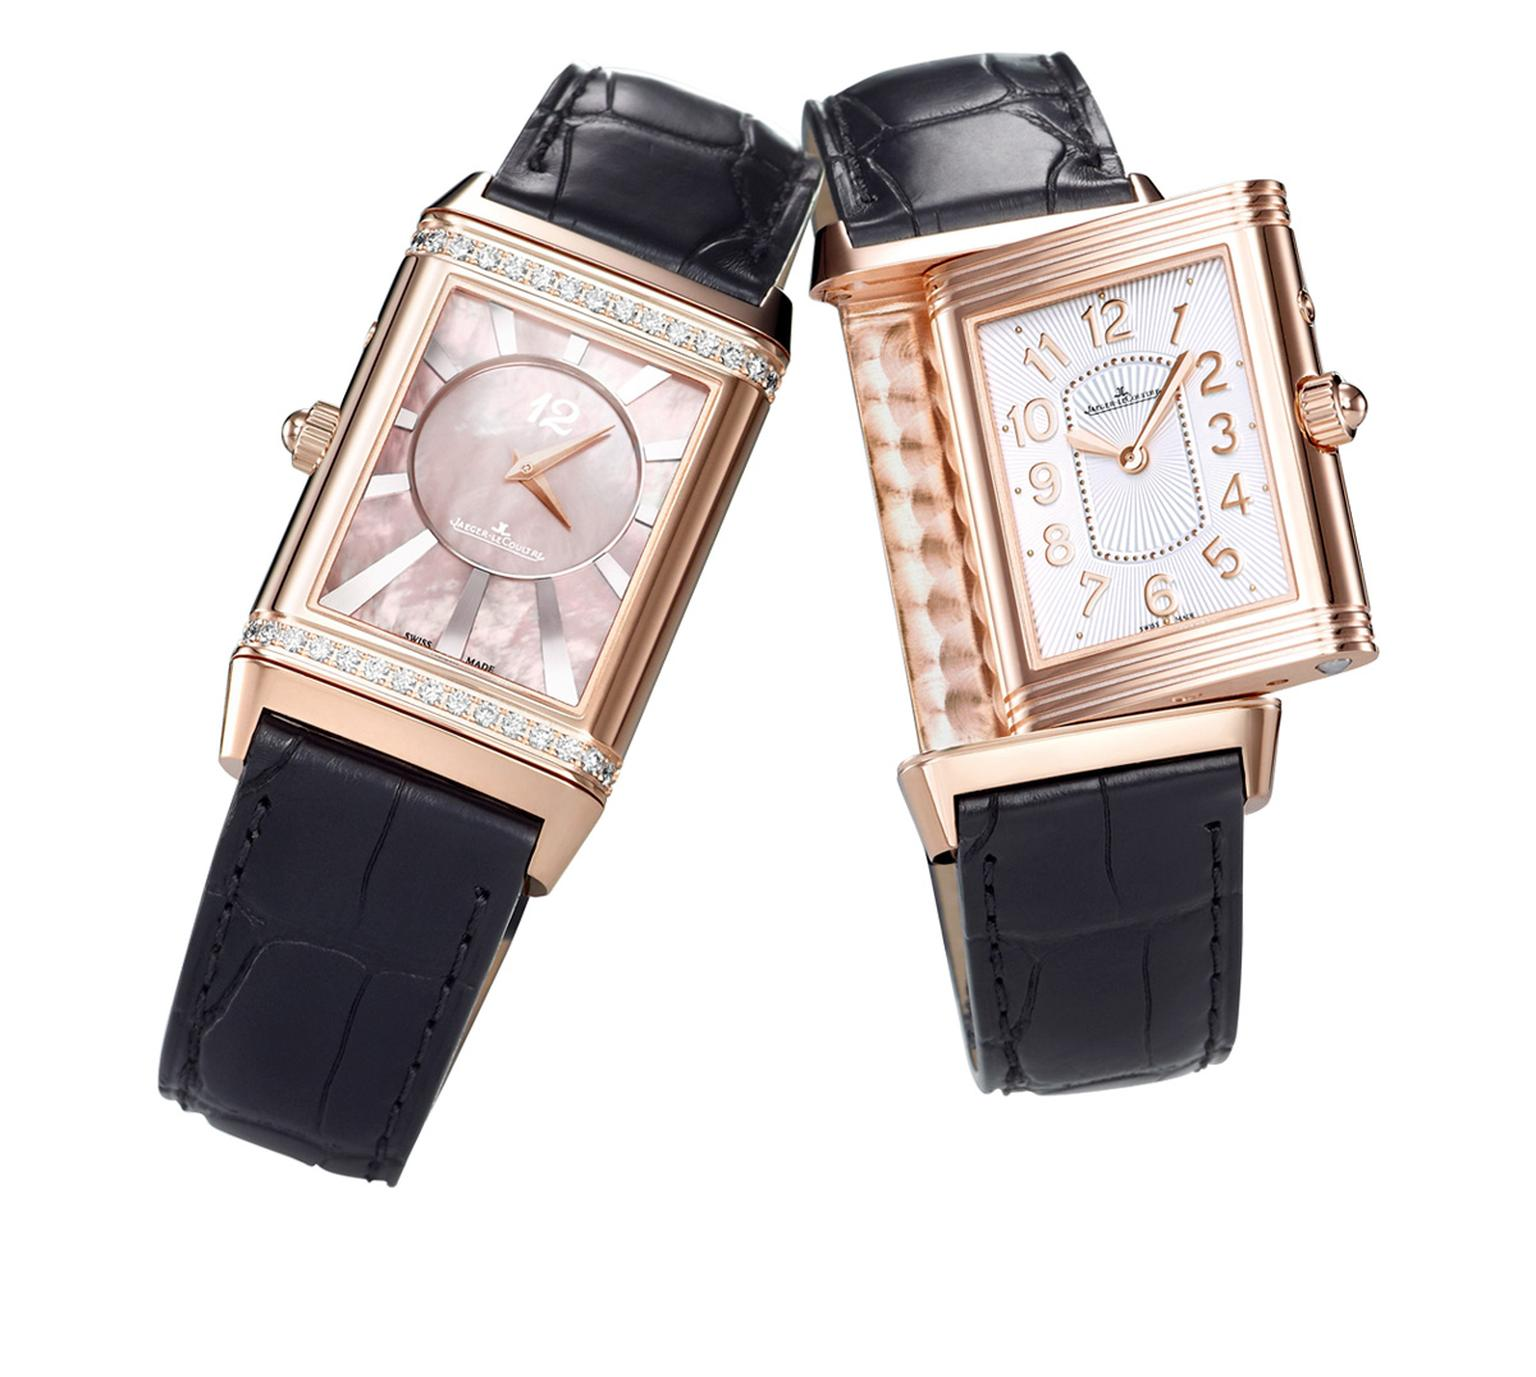 Jaeger-LeCoultre Grande Reverso Lady Ultra Thin Duetto Duo_20140103_Zoom